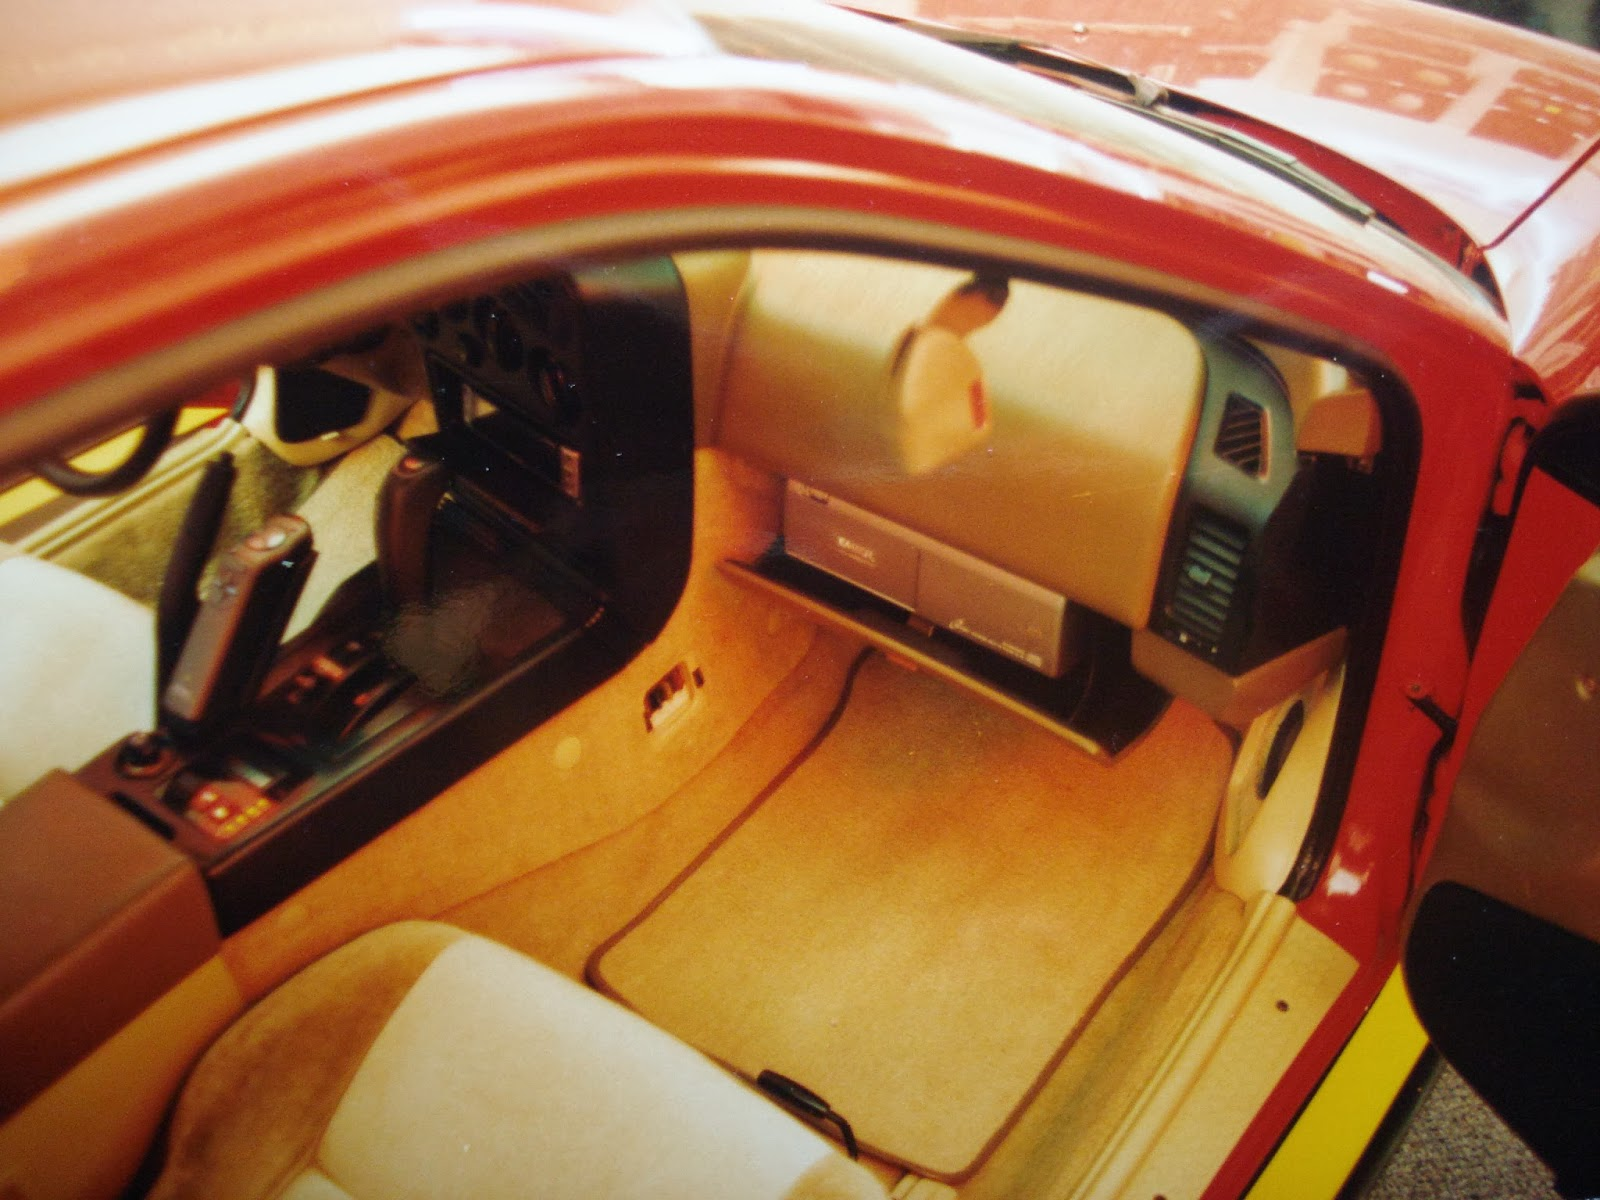 Photo image of the front interior showing the motorized CD changer and head unit in Chuck Barbosa's Red Laser as it stood during the winter storage at the end of 1995 and beginning of 1996.